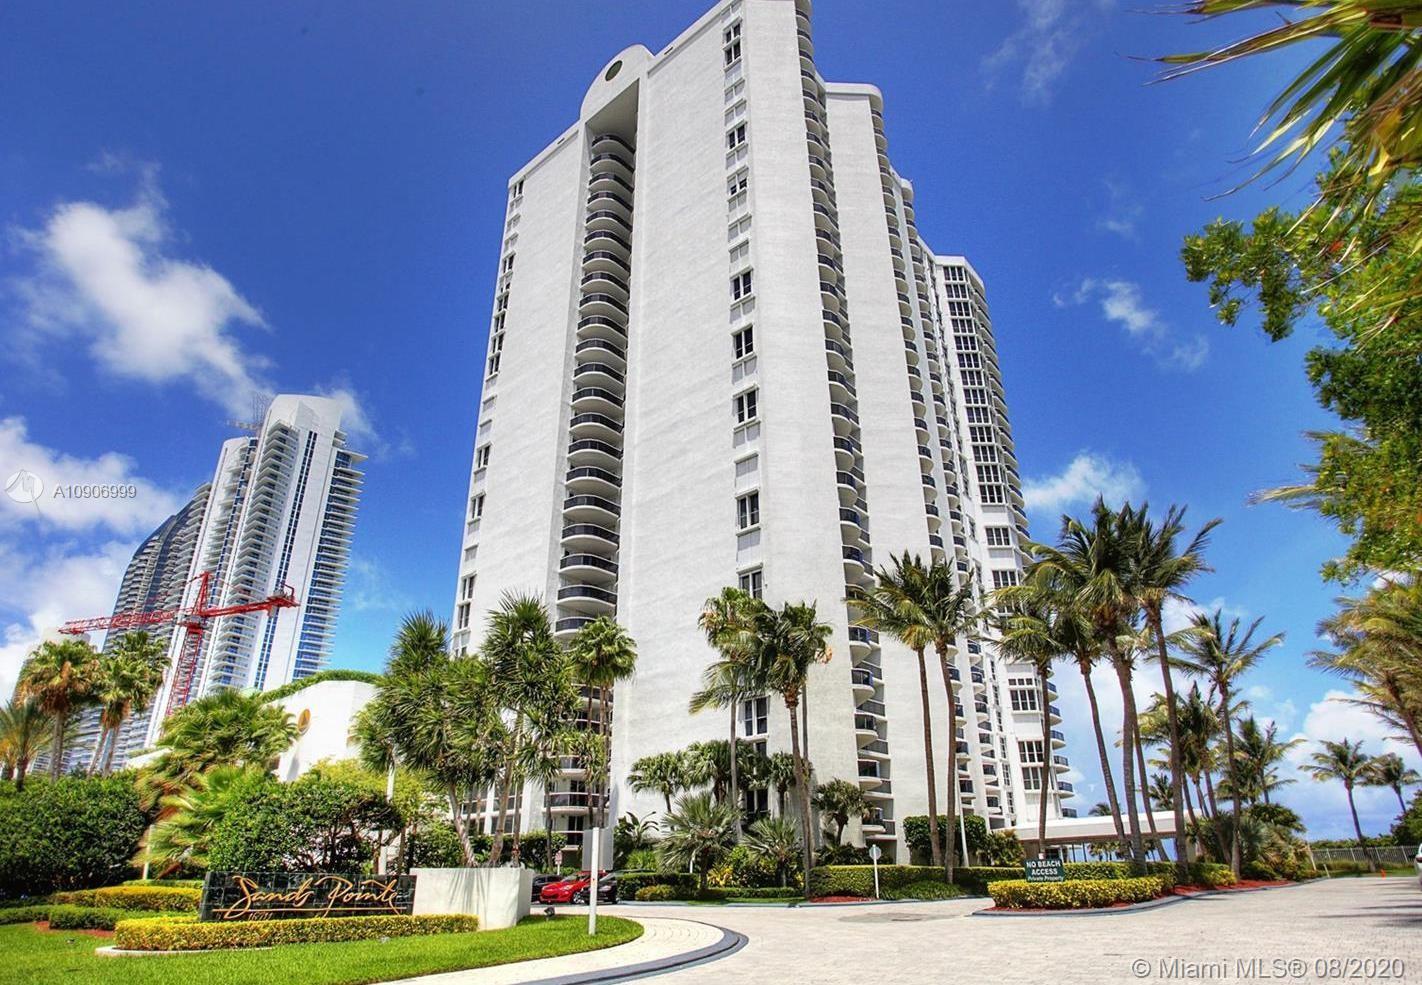 Sands Pointe #310 - 16711 Collins Ave #310, Sunny Isles Beach, FL 33160